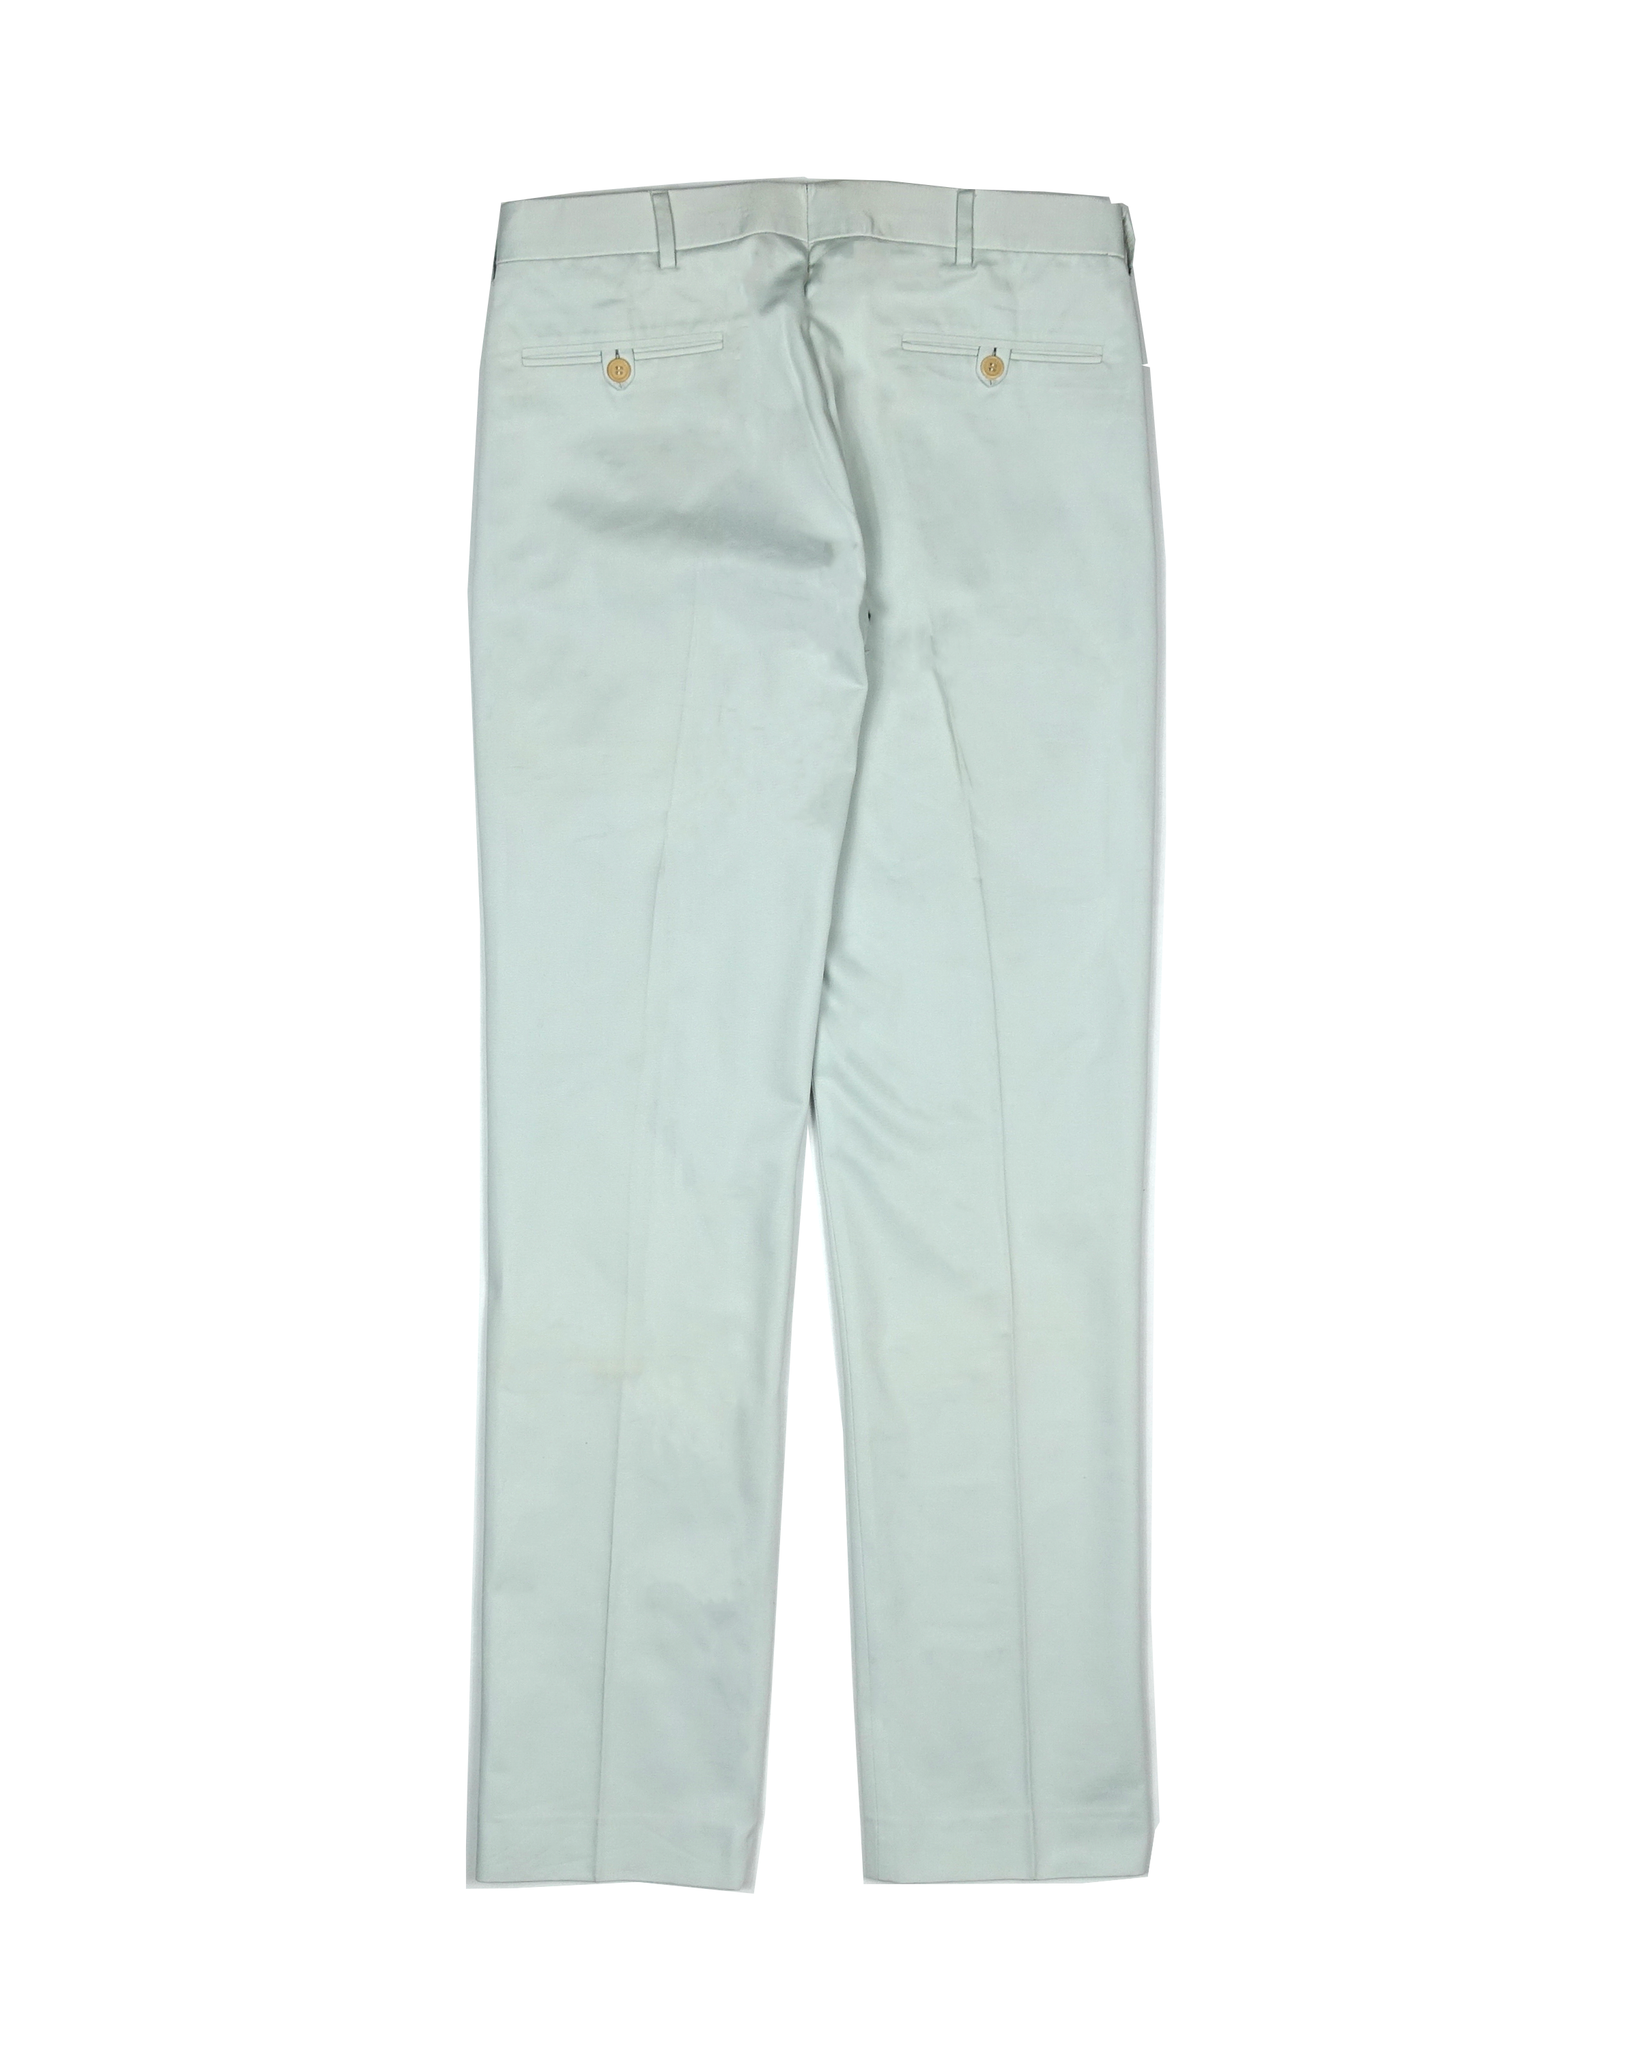 Helmut Lang Pale Grey Heavy Cotton Pleated Trouser